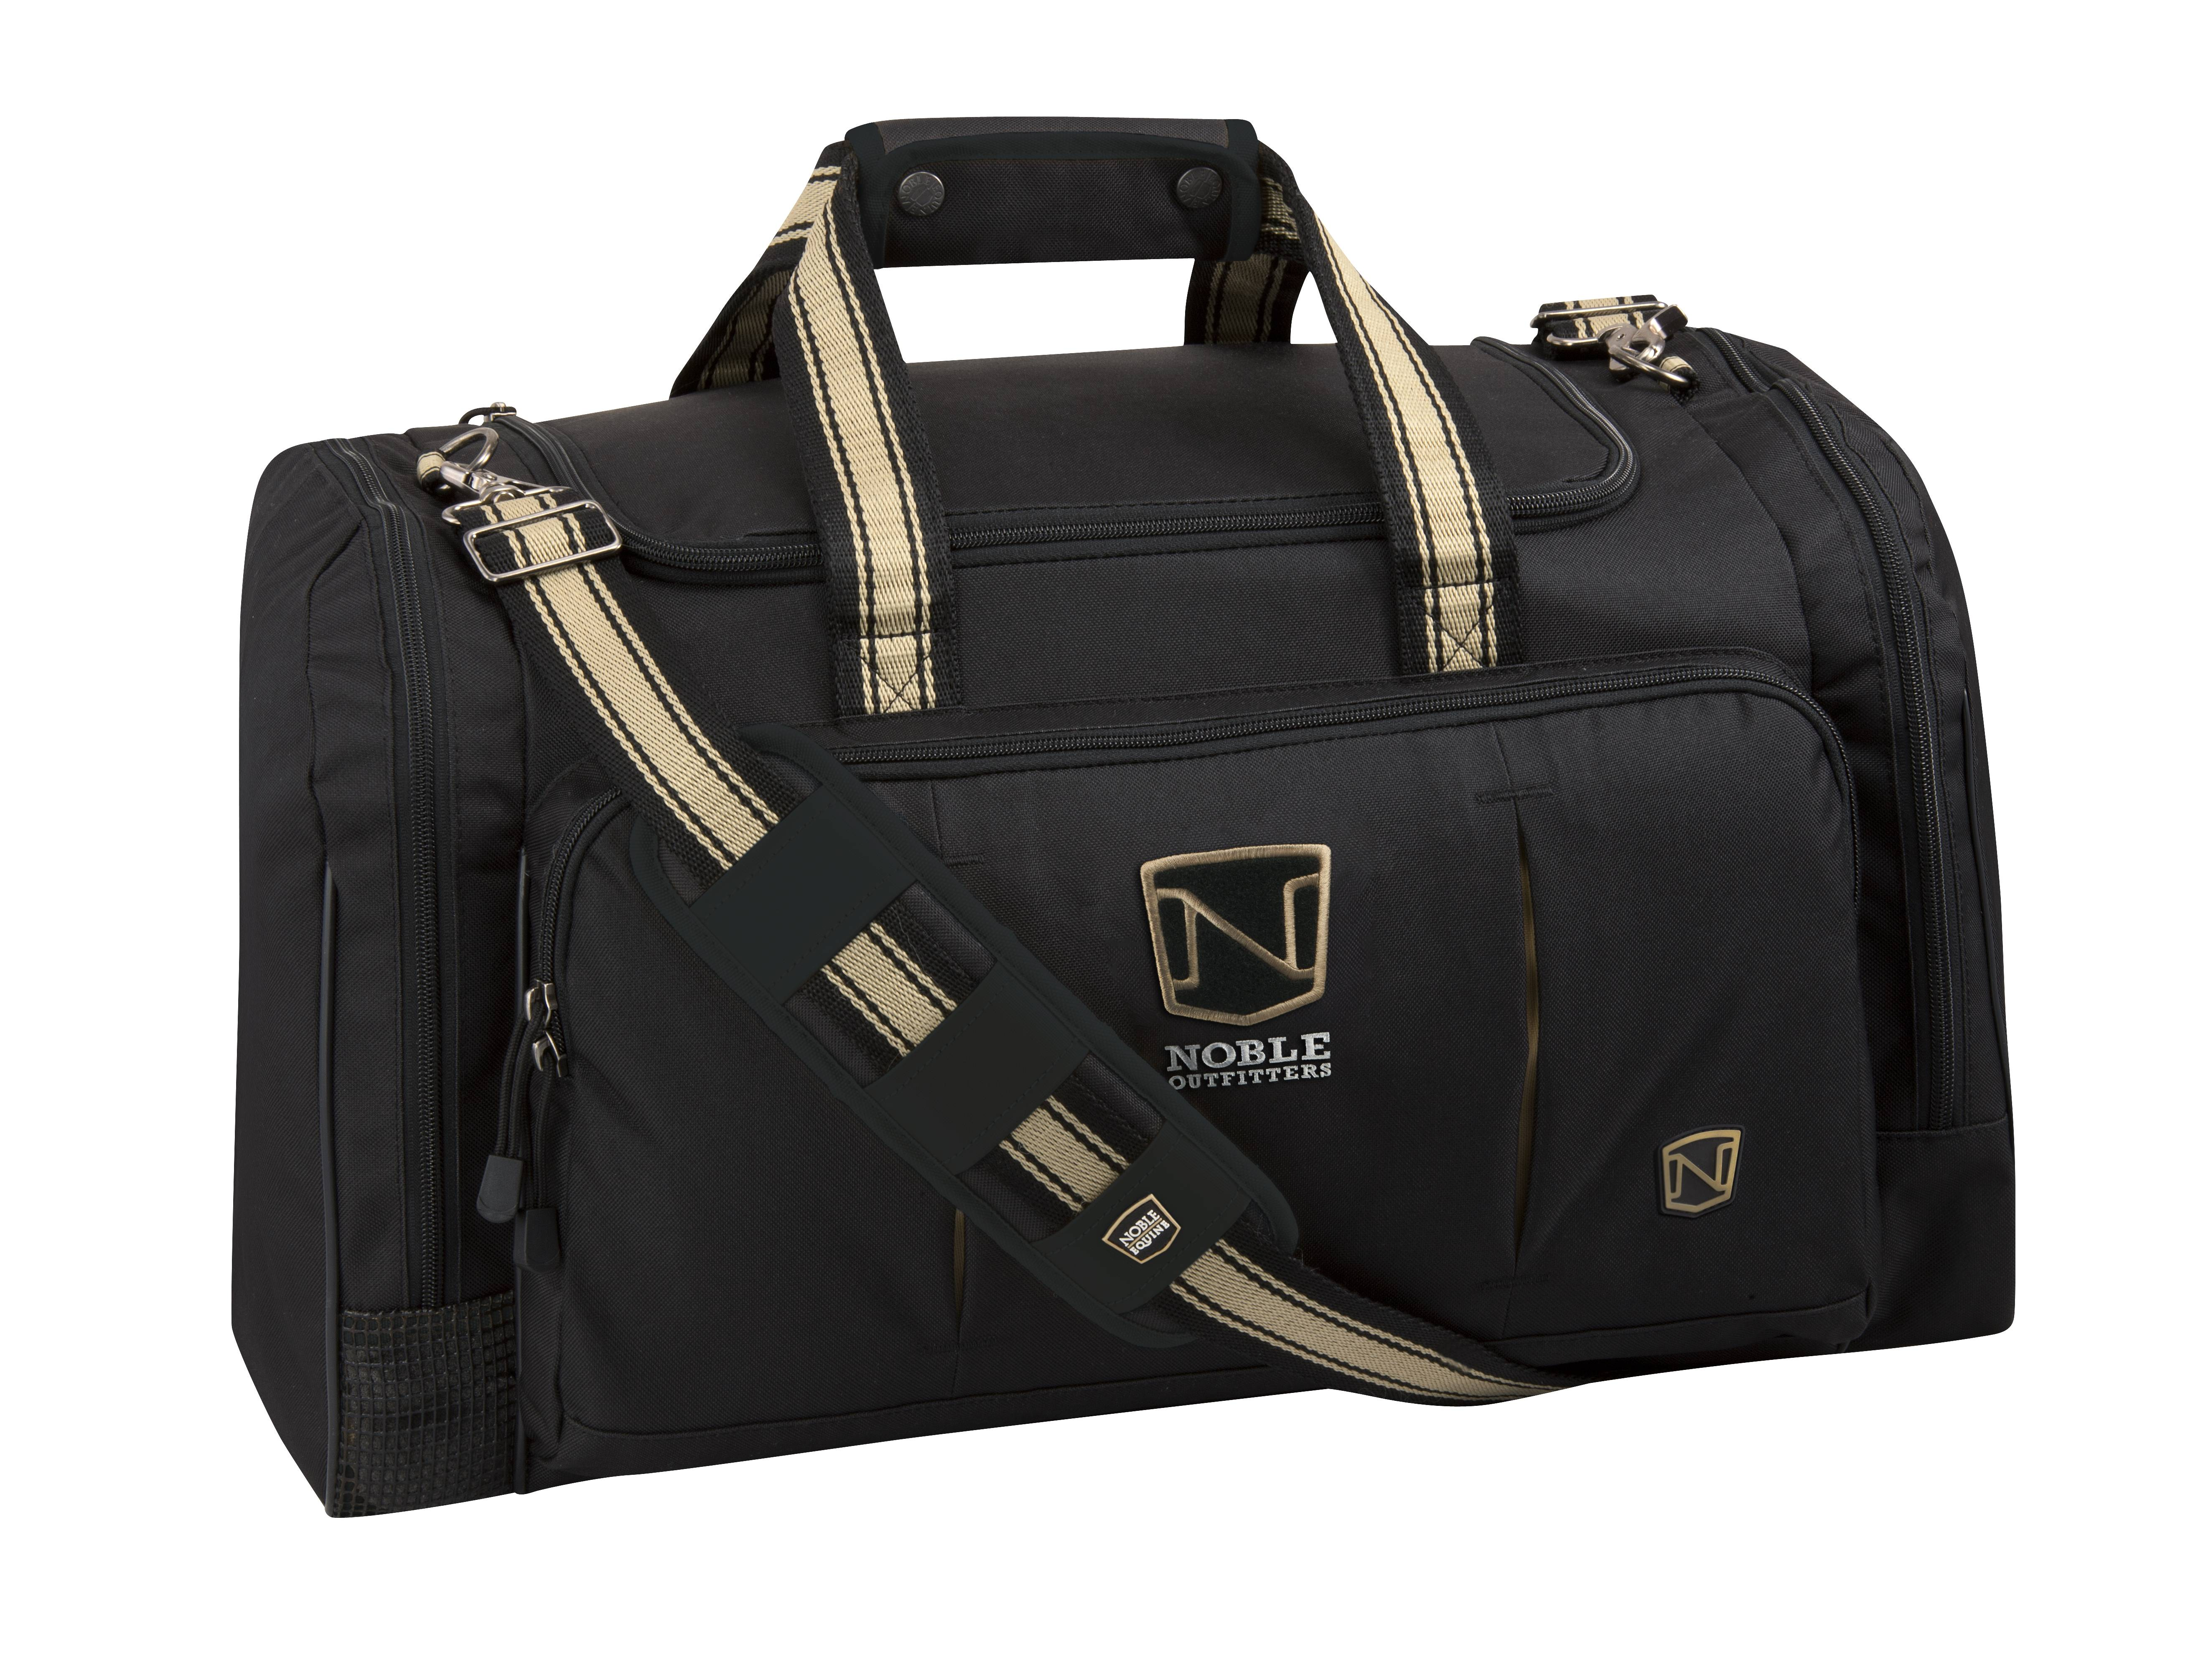 Noble Outfitters 5.2 Hands Duffle